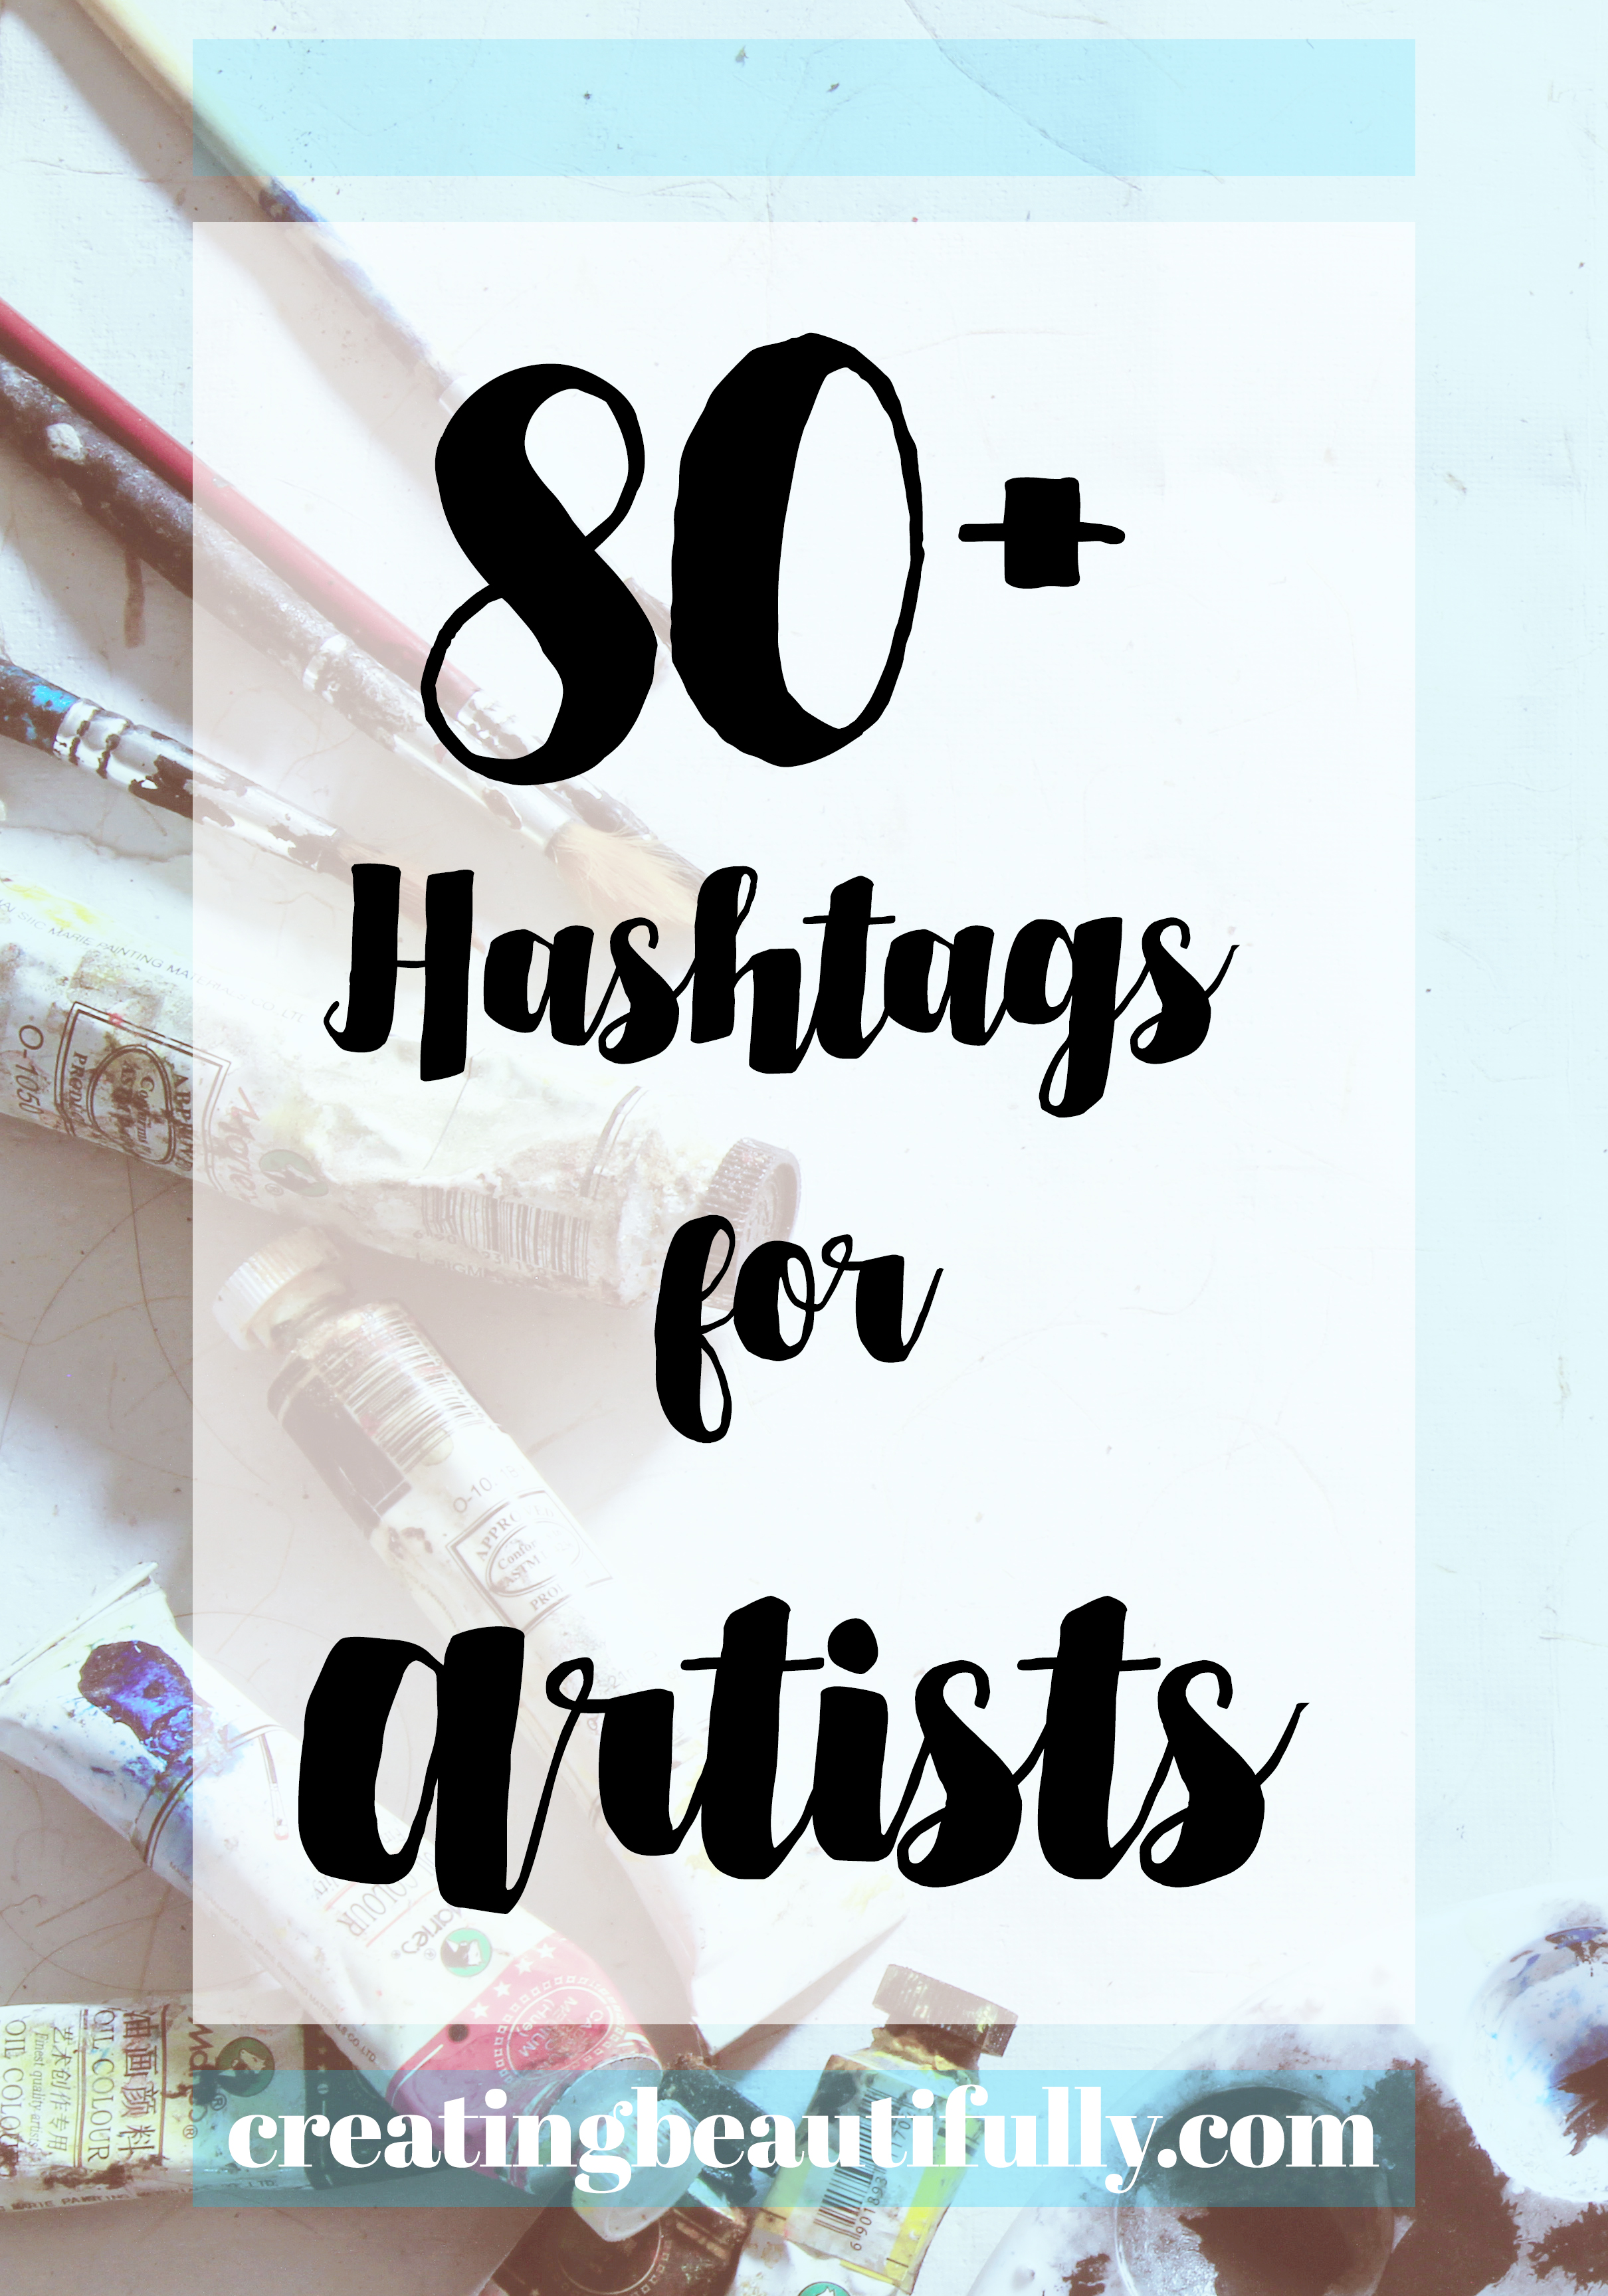 80 Hashtags for Artists